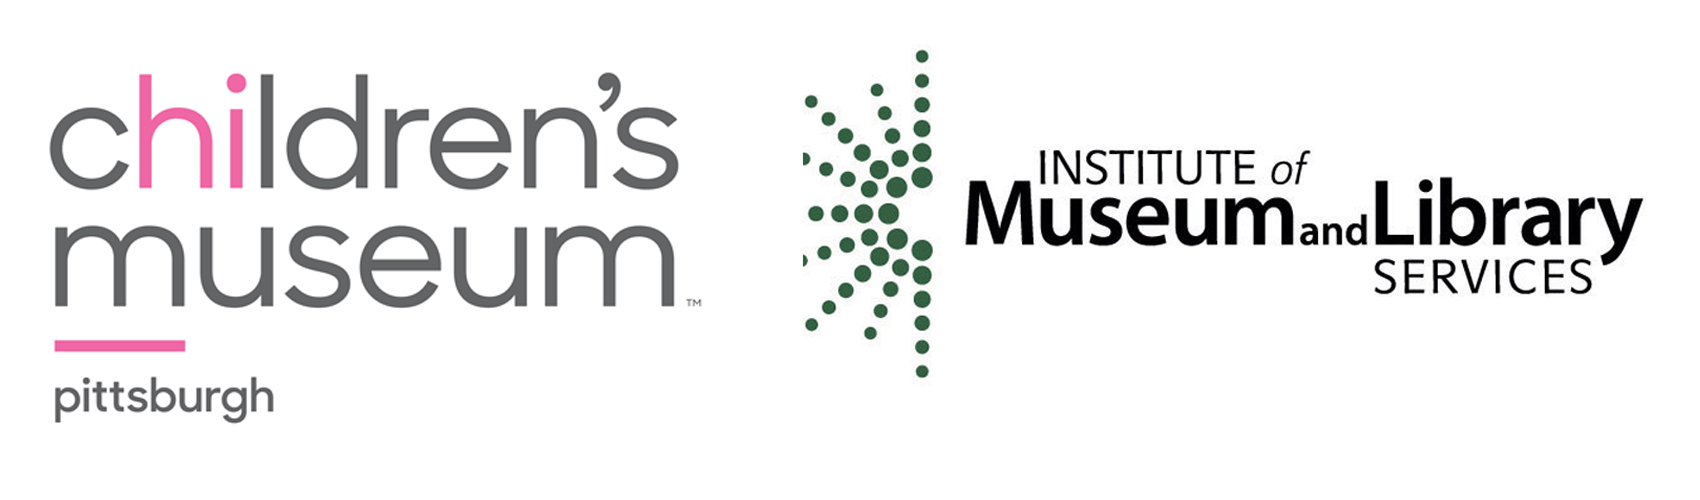 Children's Museum of Pittsburgh and Institute of Museum and Library Services logos